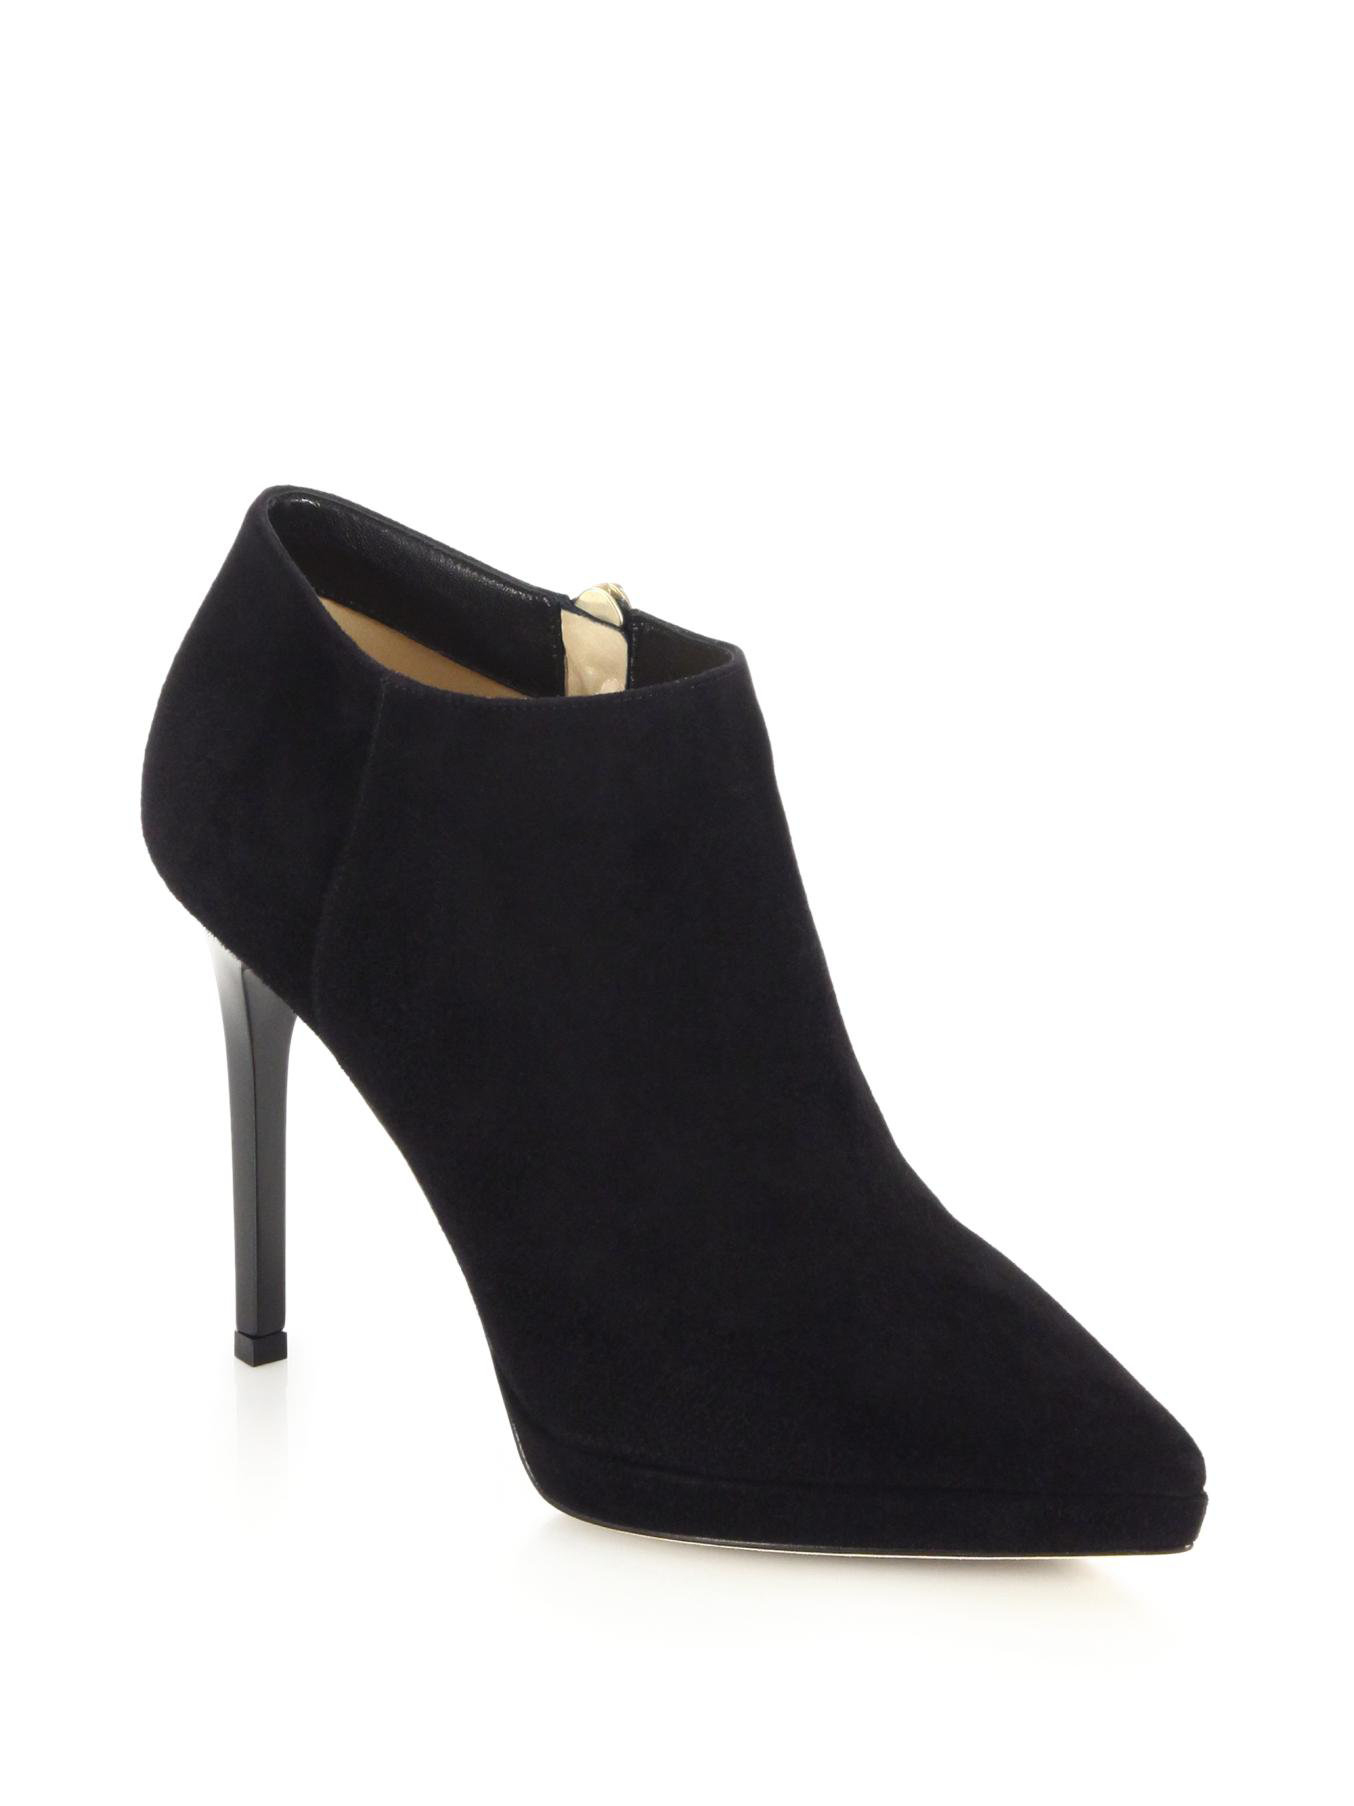 Jimmy Choo Helaine 100 suede ankle boots low cost online from china free shipping rUNI1k